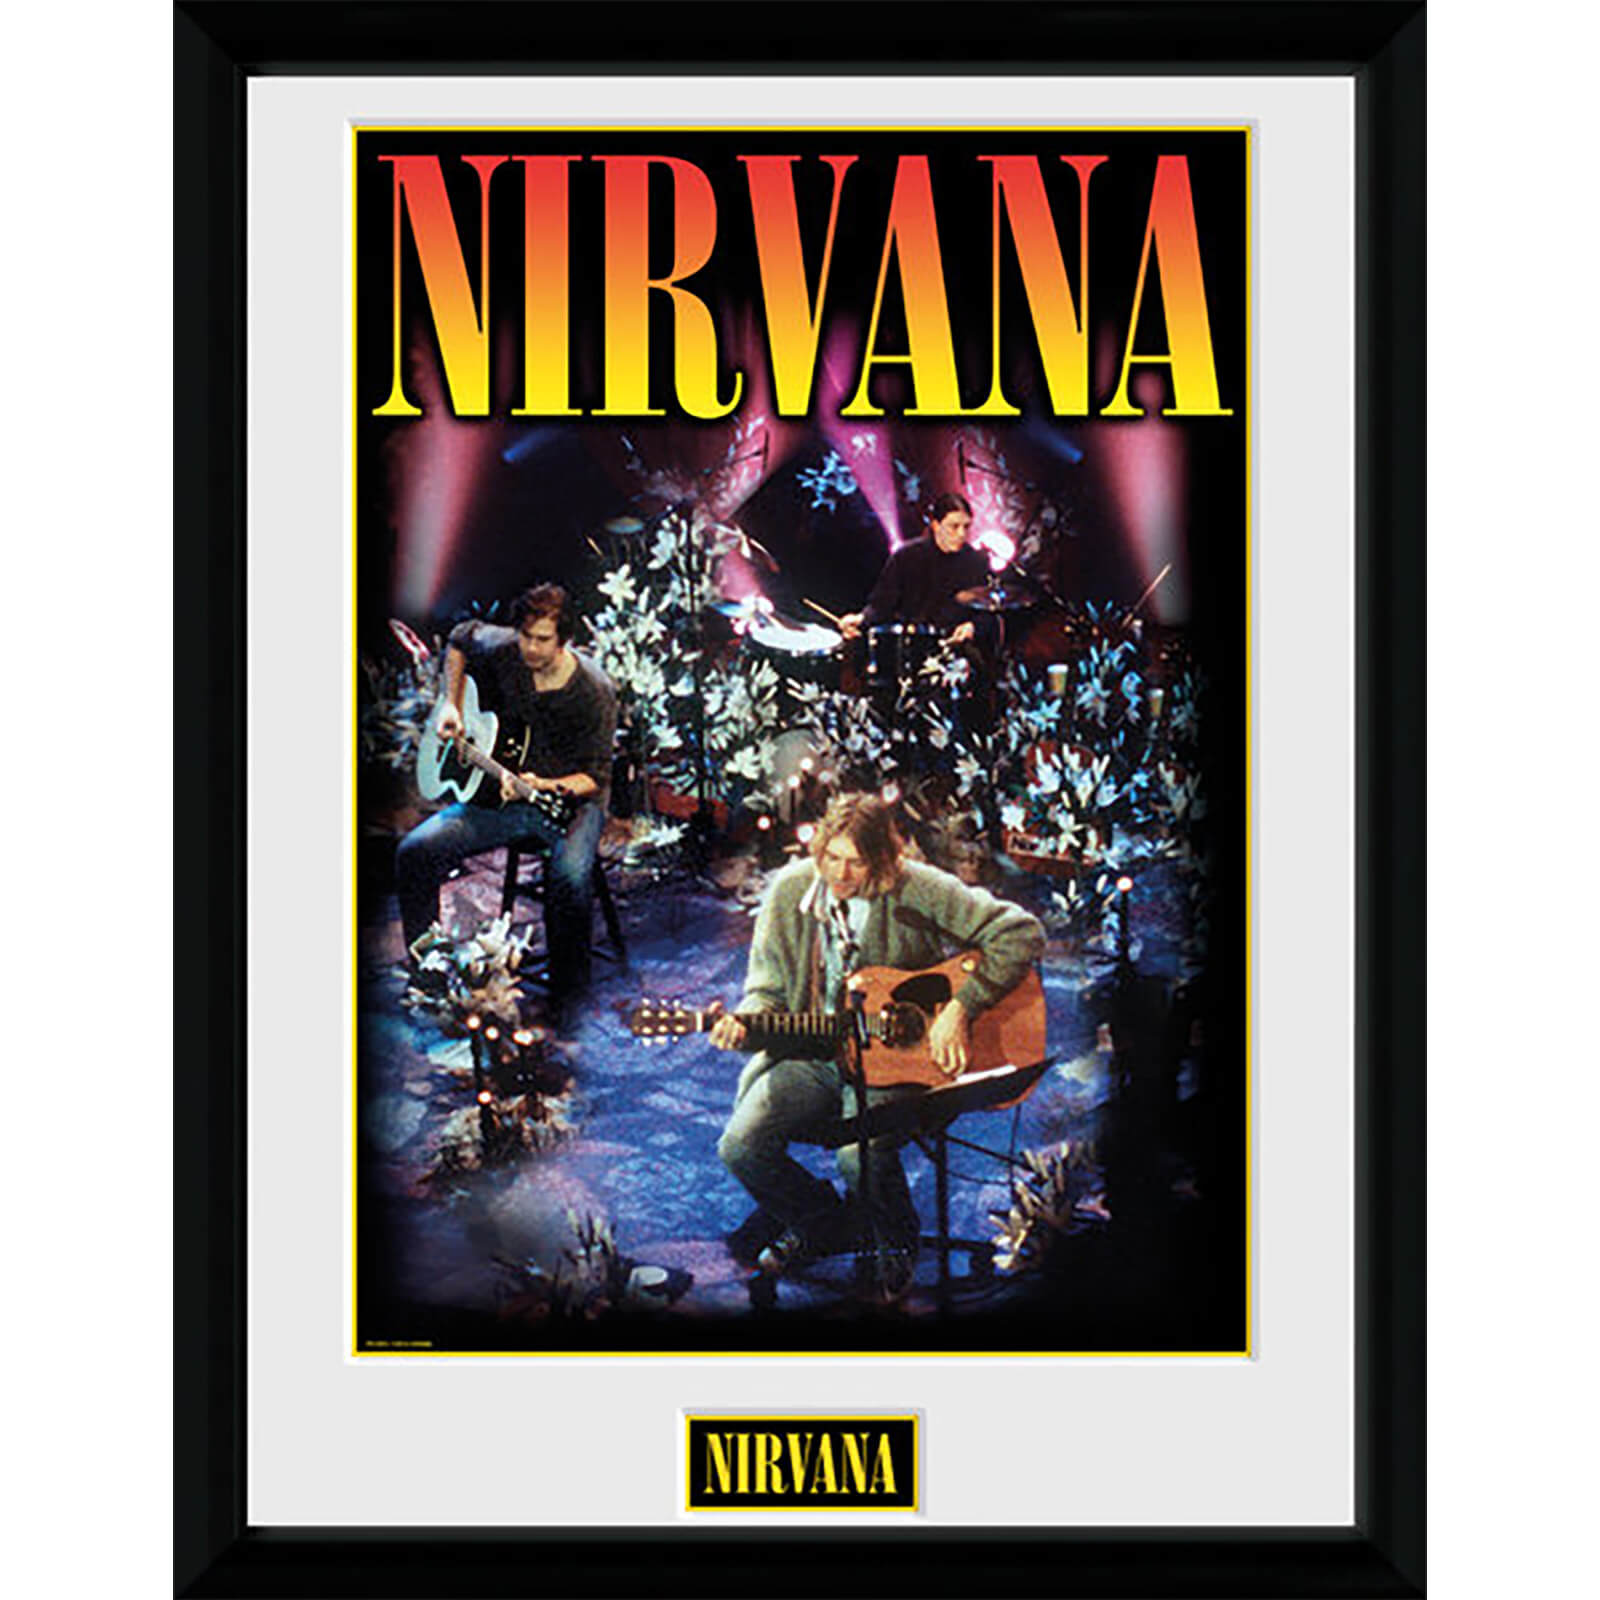 Nirvana Unplugged - 16 x 12 Inches Framed Photograph